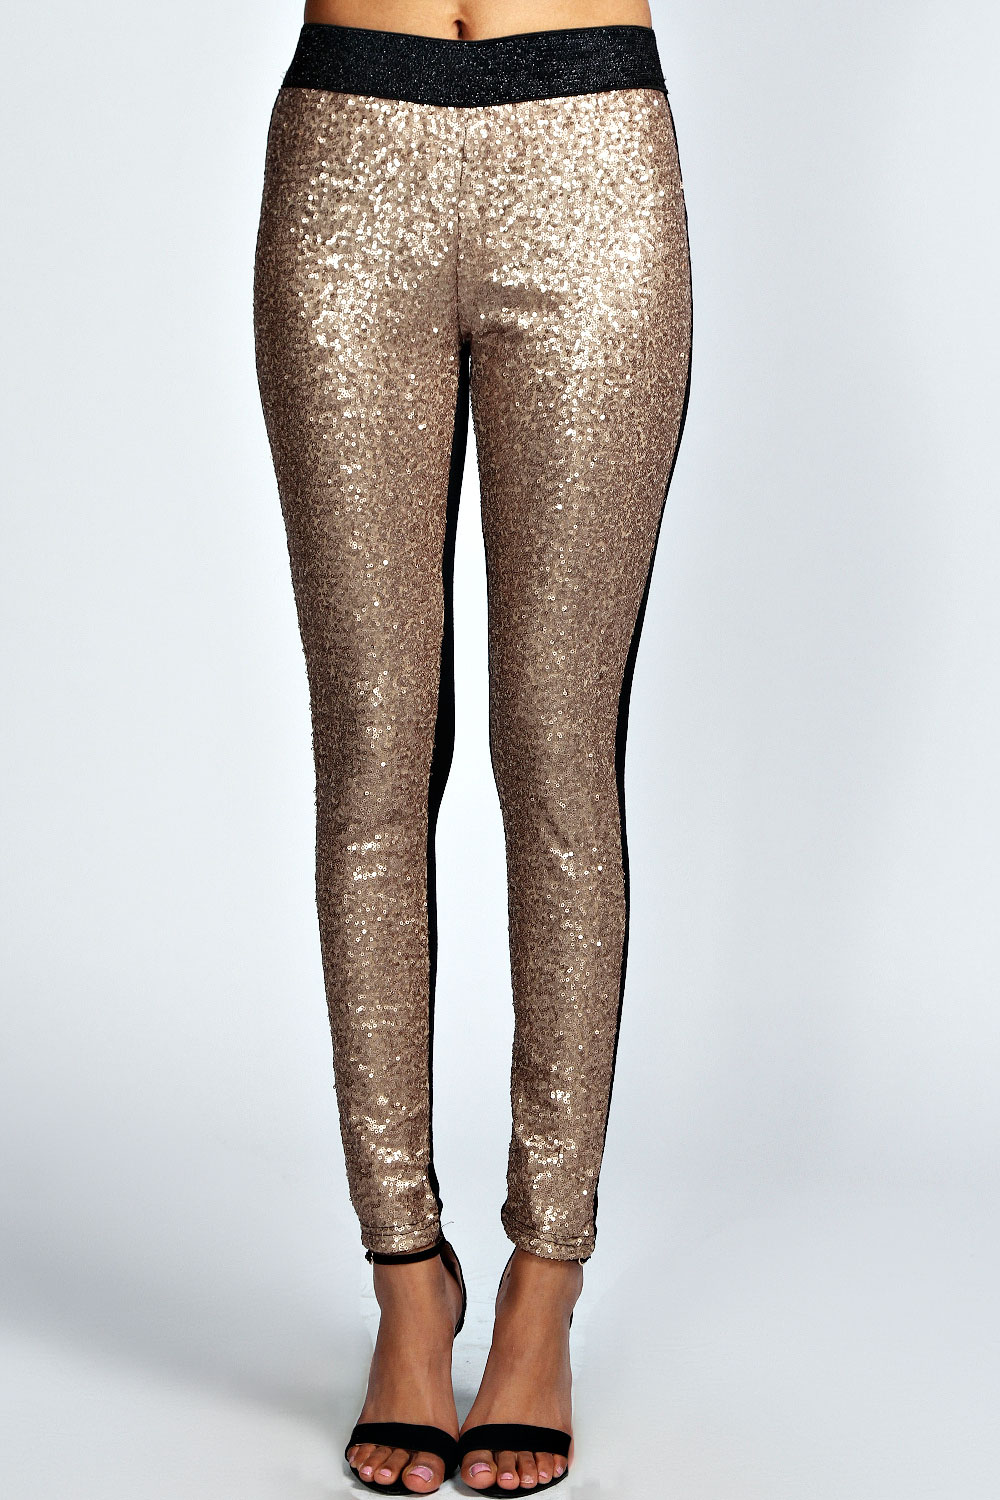 5214cd860a4 Image is loading Boohoo-Sassy-All-Over-Sequin-Front-Leggings